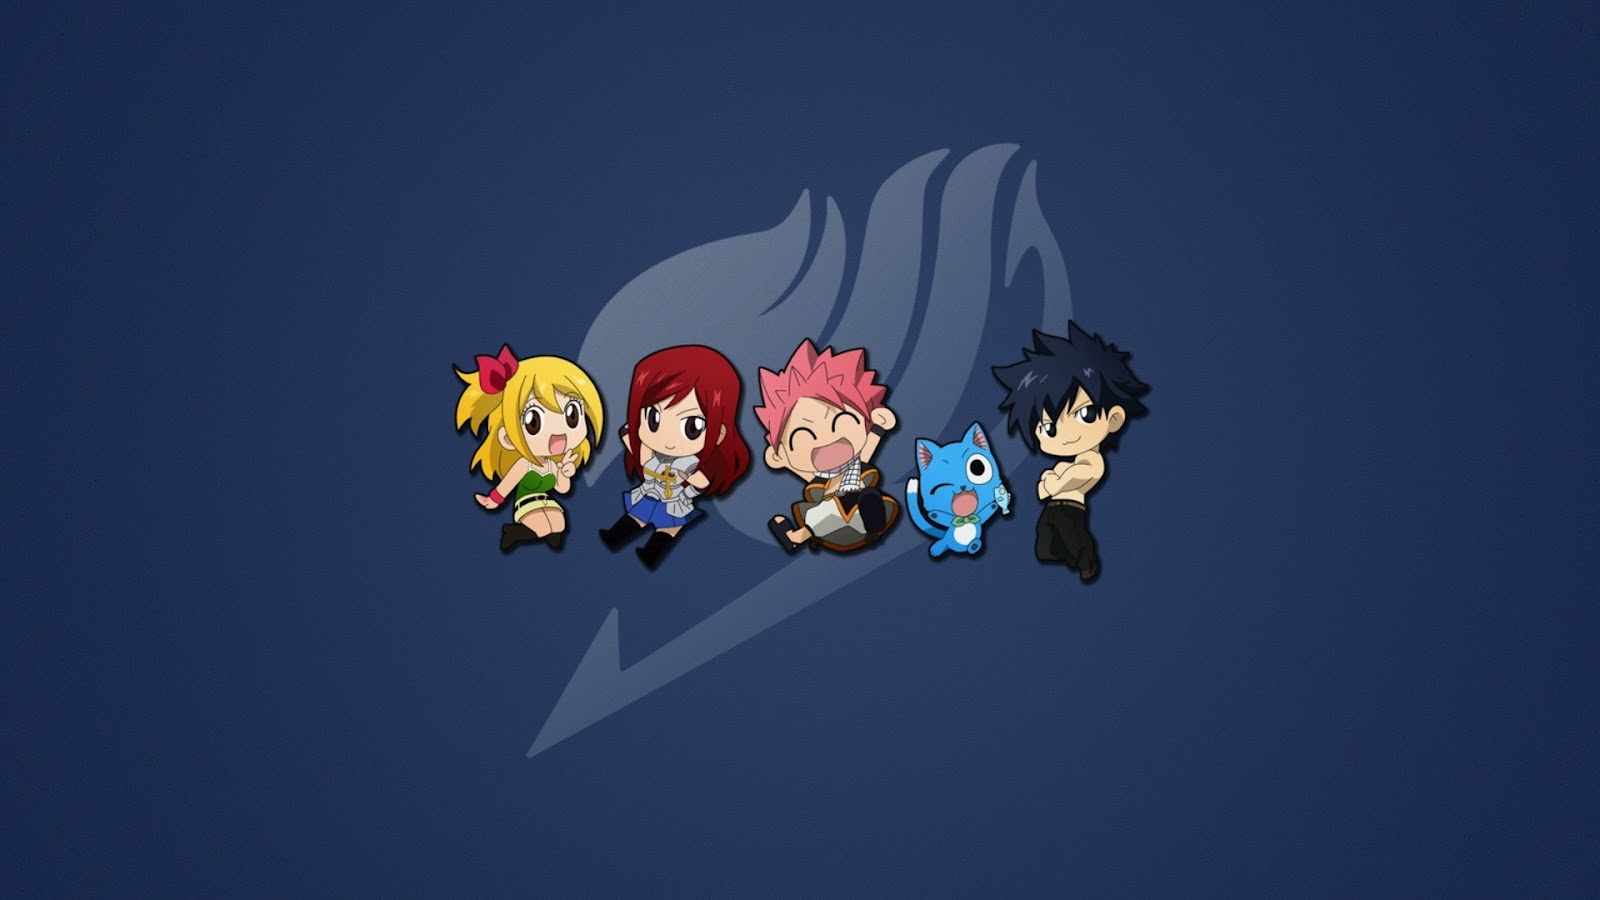 your wallpaper fairy tail wallpaper